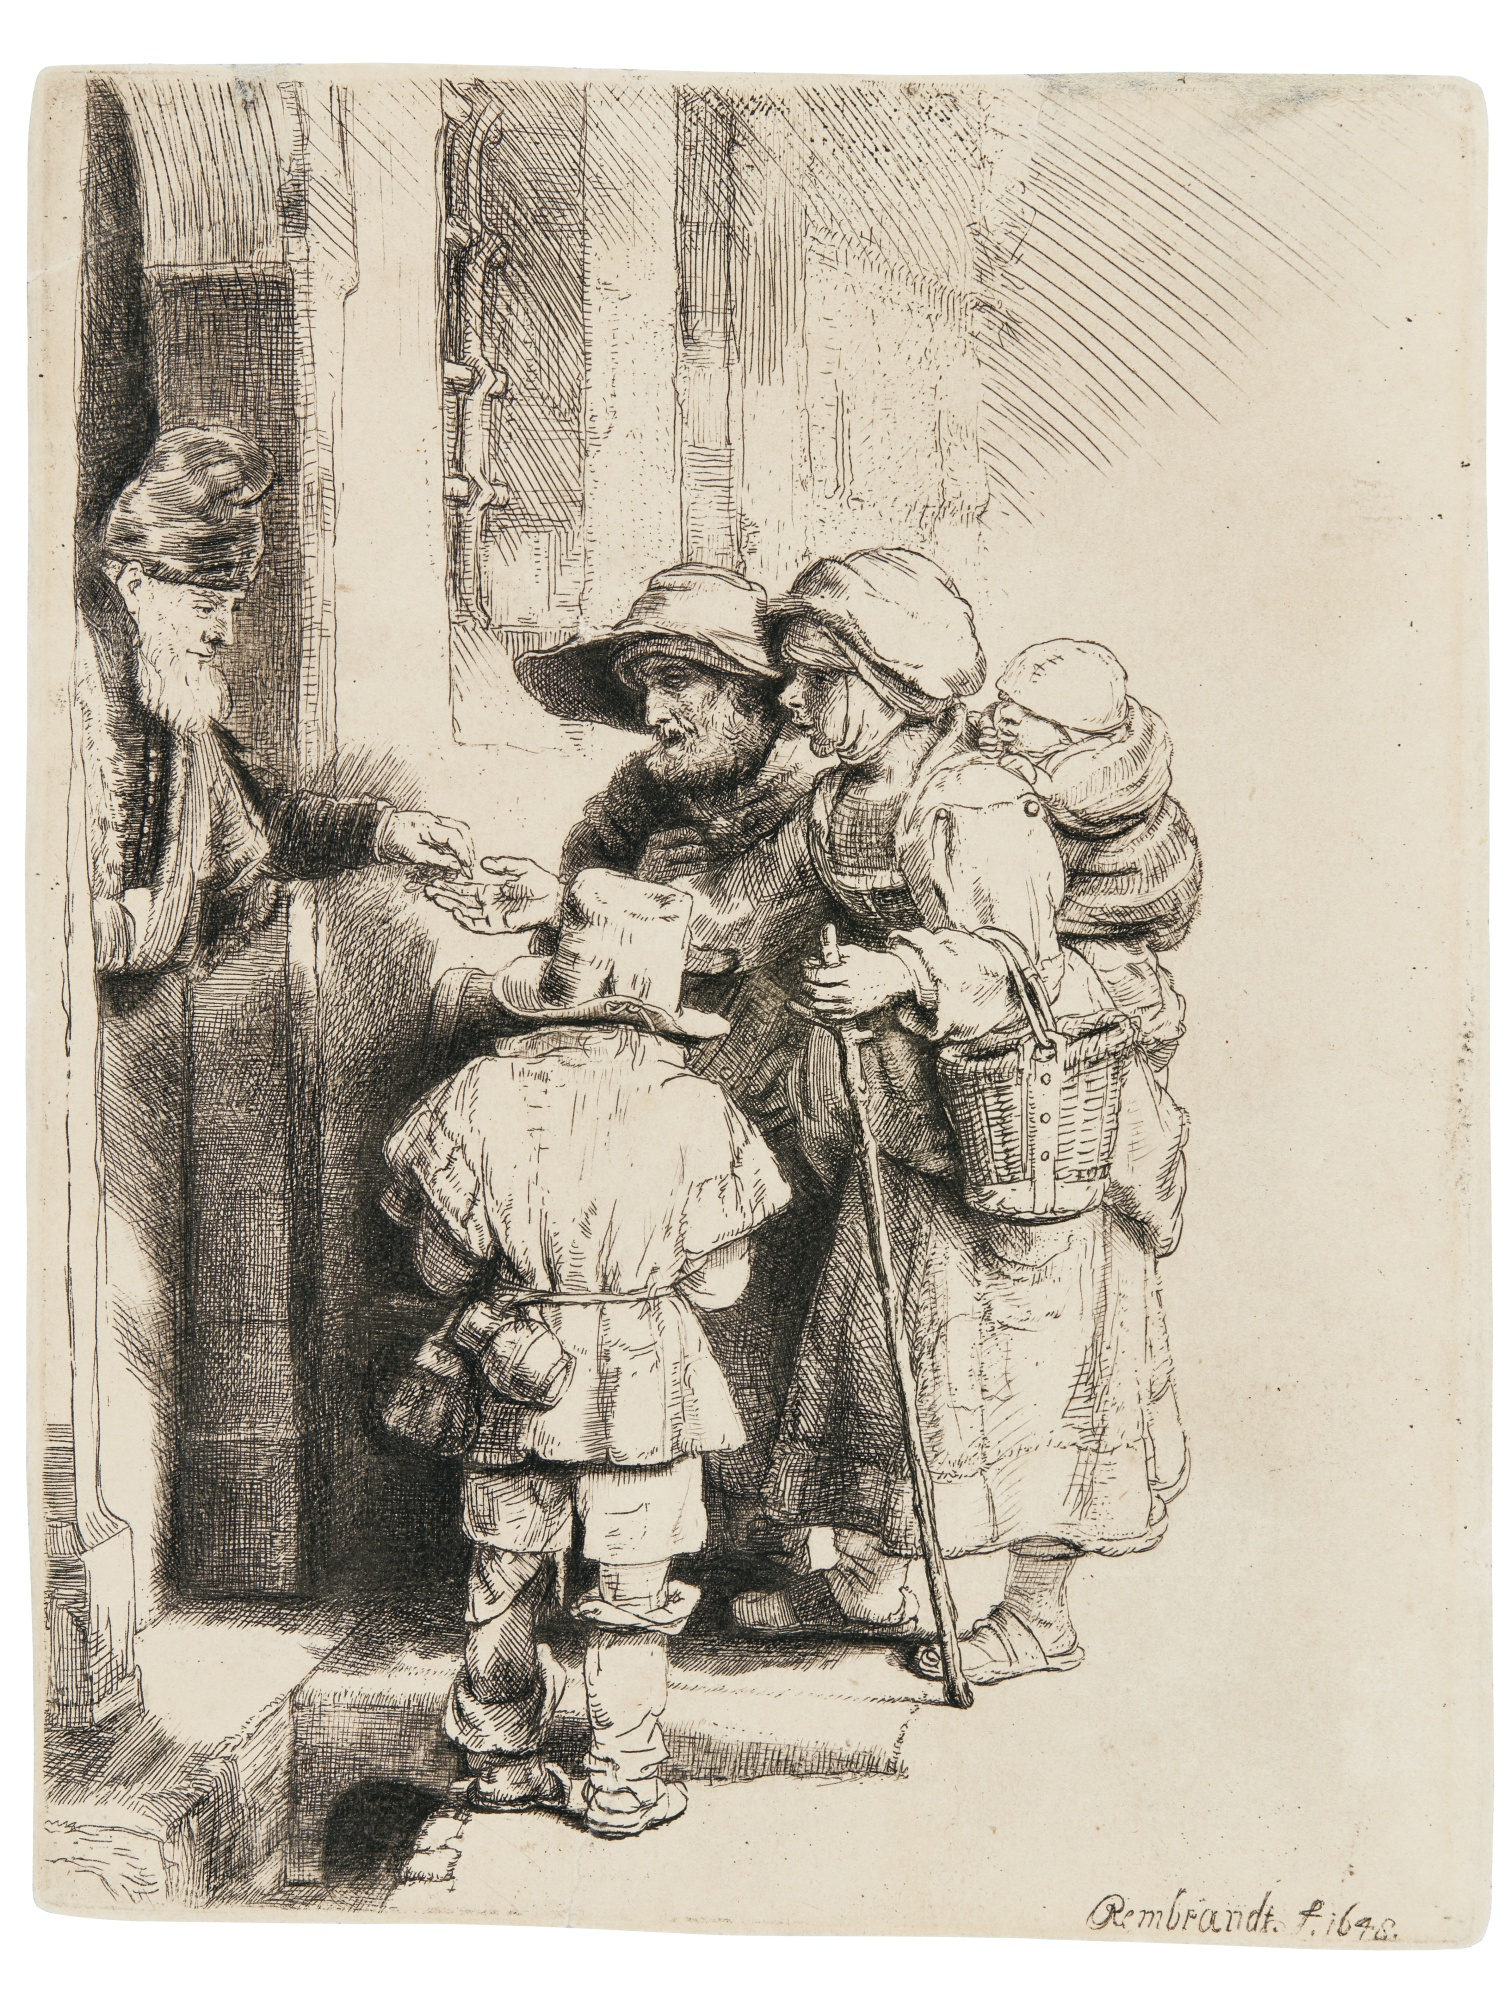 Rembrandt van Rijn-A Blind Hurdy-Gurdy Player And Family Receiving Alms (B. Holl. 176; New Holl. 243; H. 233)-1648